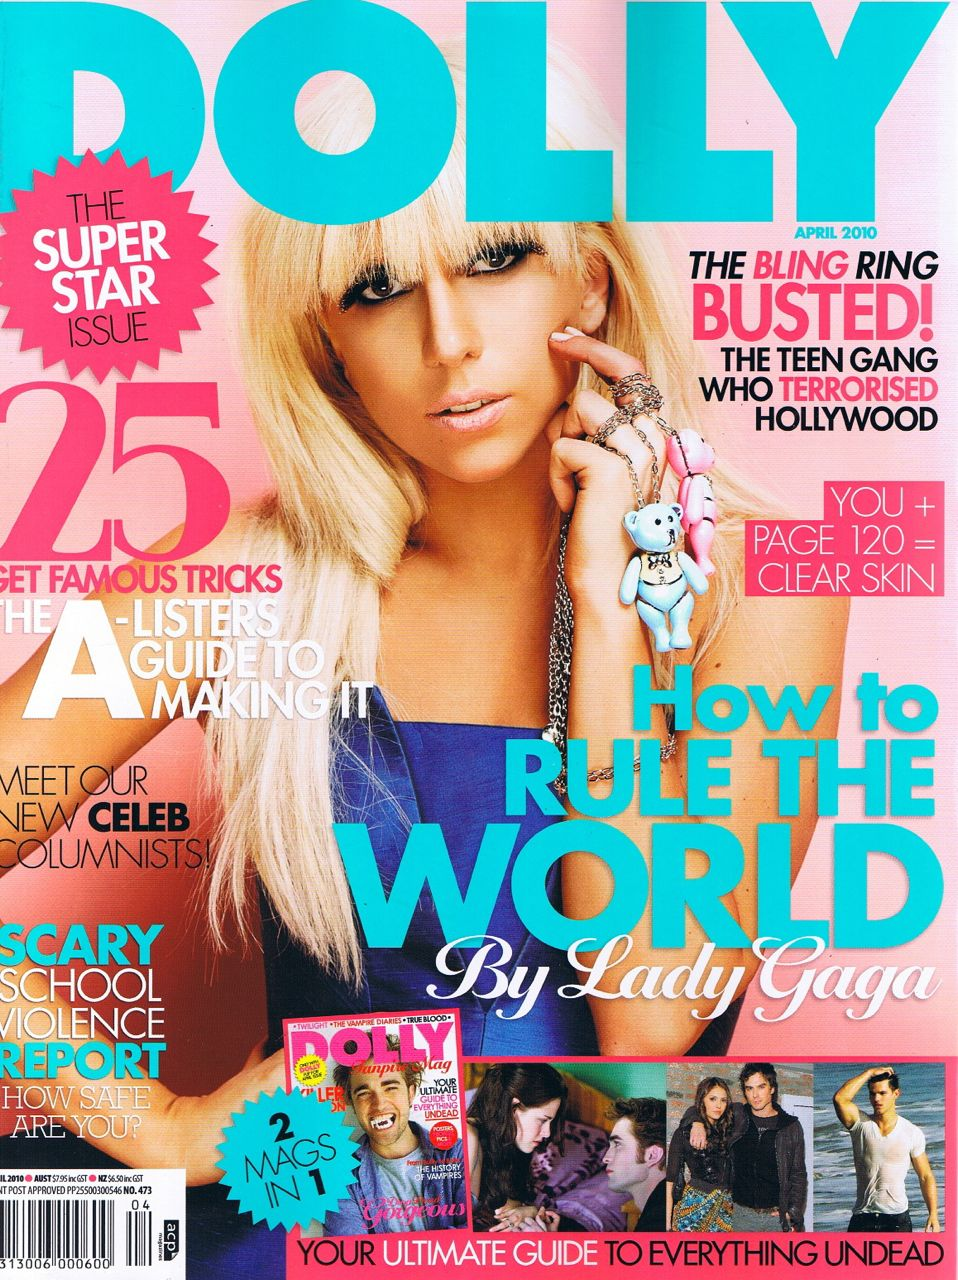 Http Www Fashionmodeldirectory Com Magazines Dolly Covers April 2010